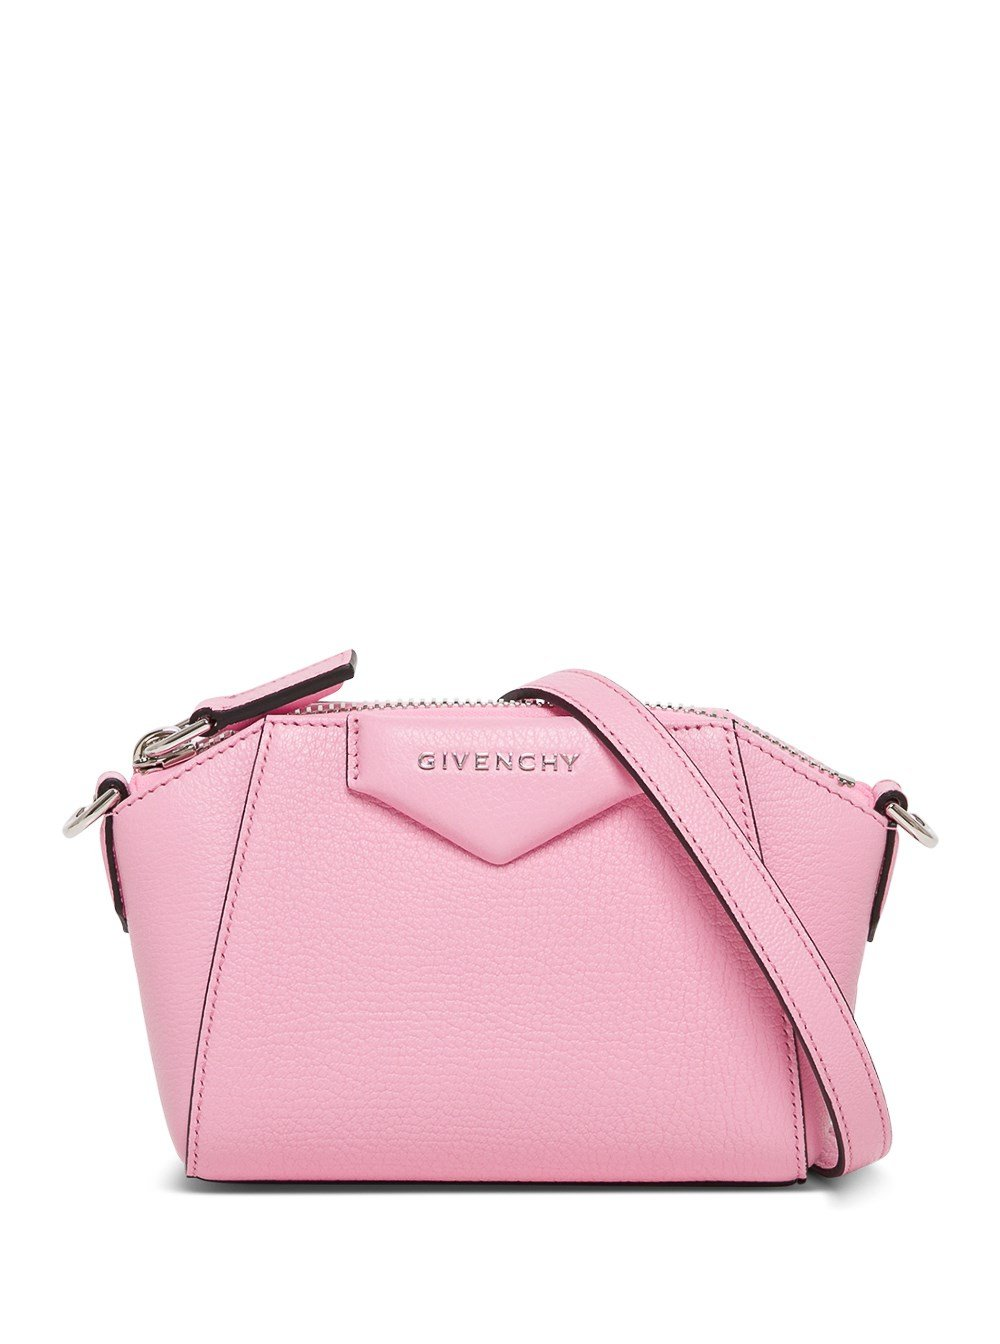 Antigona Nano Crossbody Bag in Pink Leather